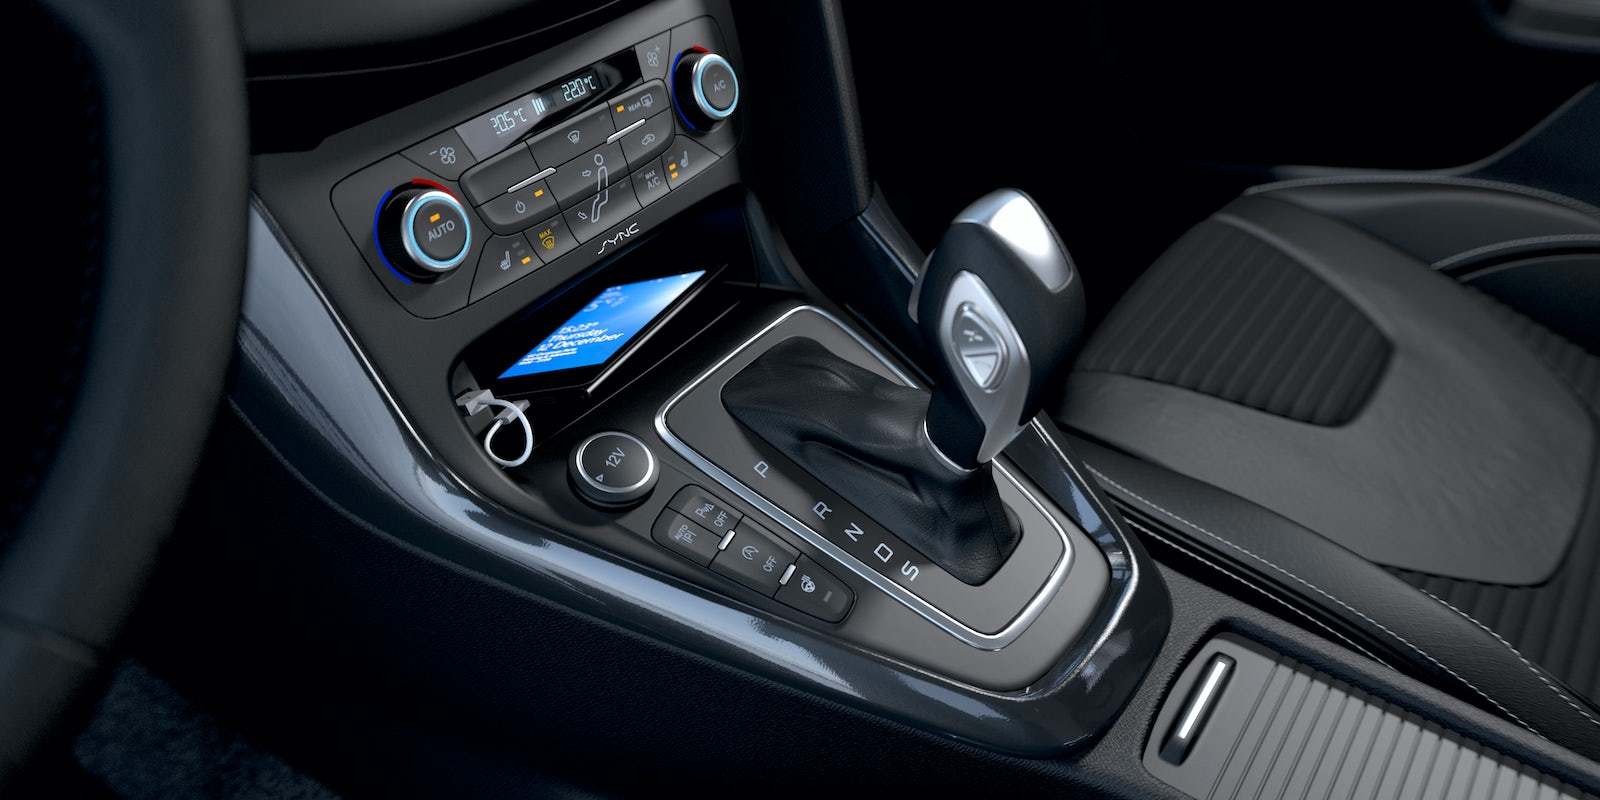 You can get the focus with a fast shifting automatic gearbox